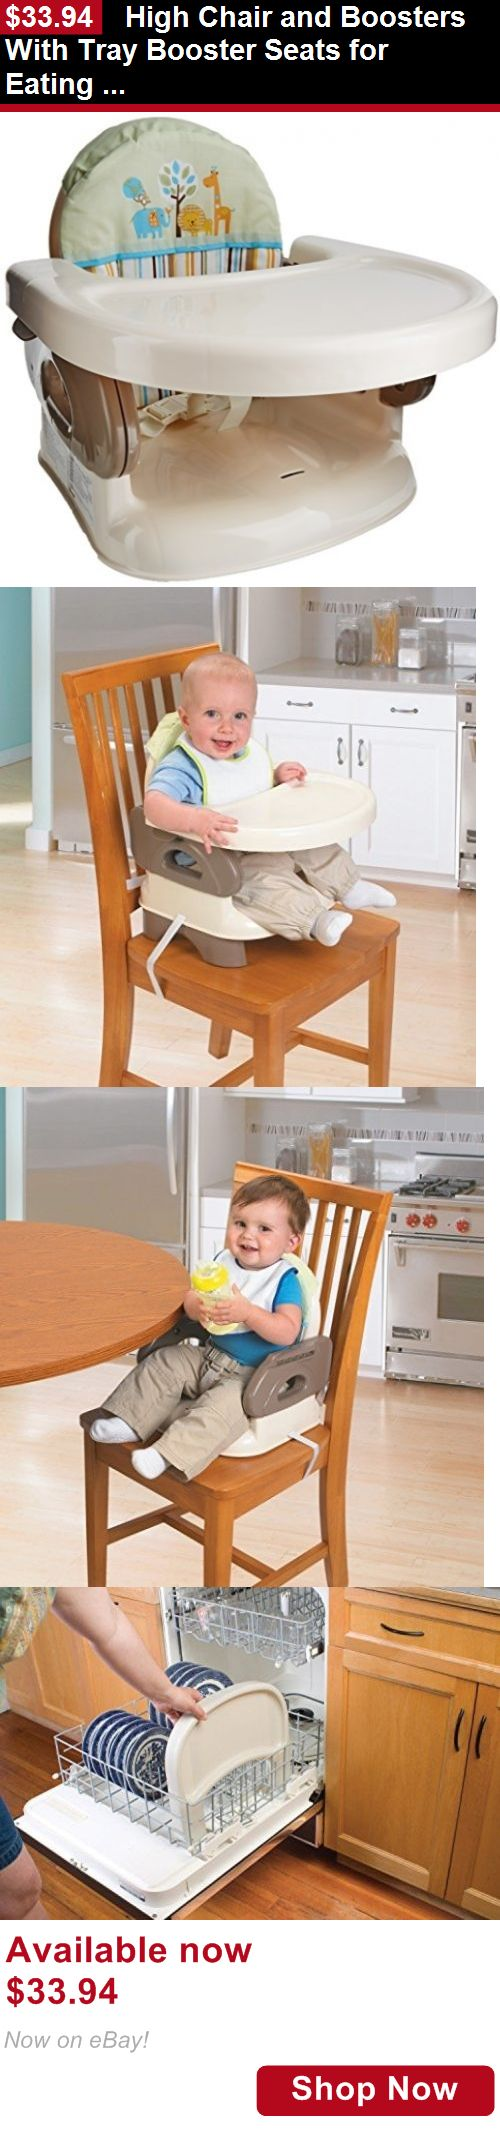 Booster Chairs: High Chair And Boosters With Tray Booster Seats For Eating Portable Folding BUY IT NOW ONLY: $33.94